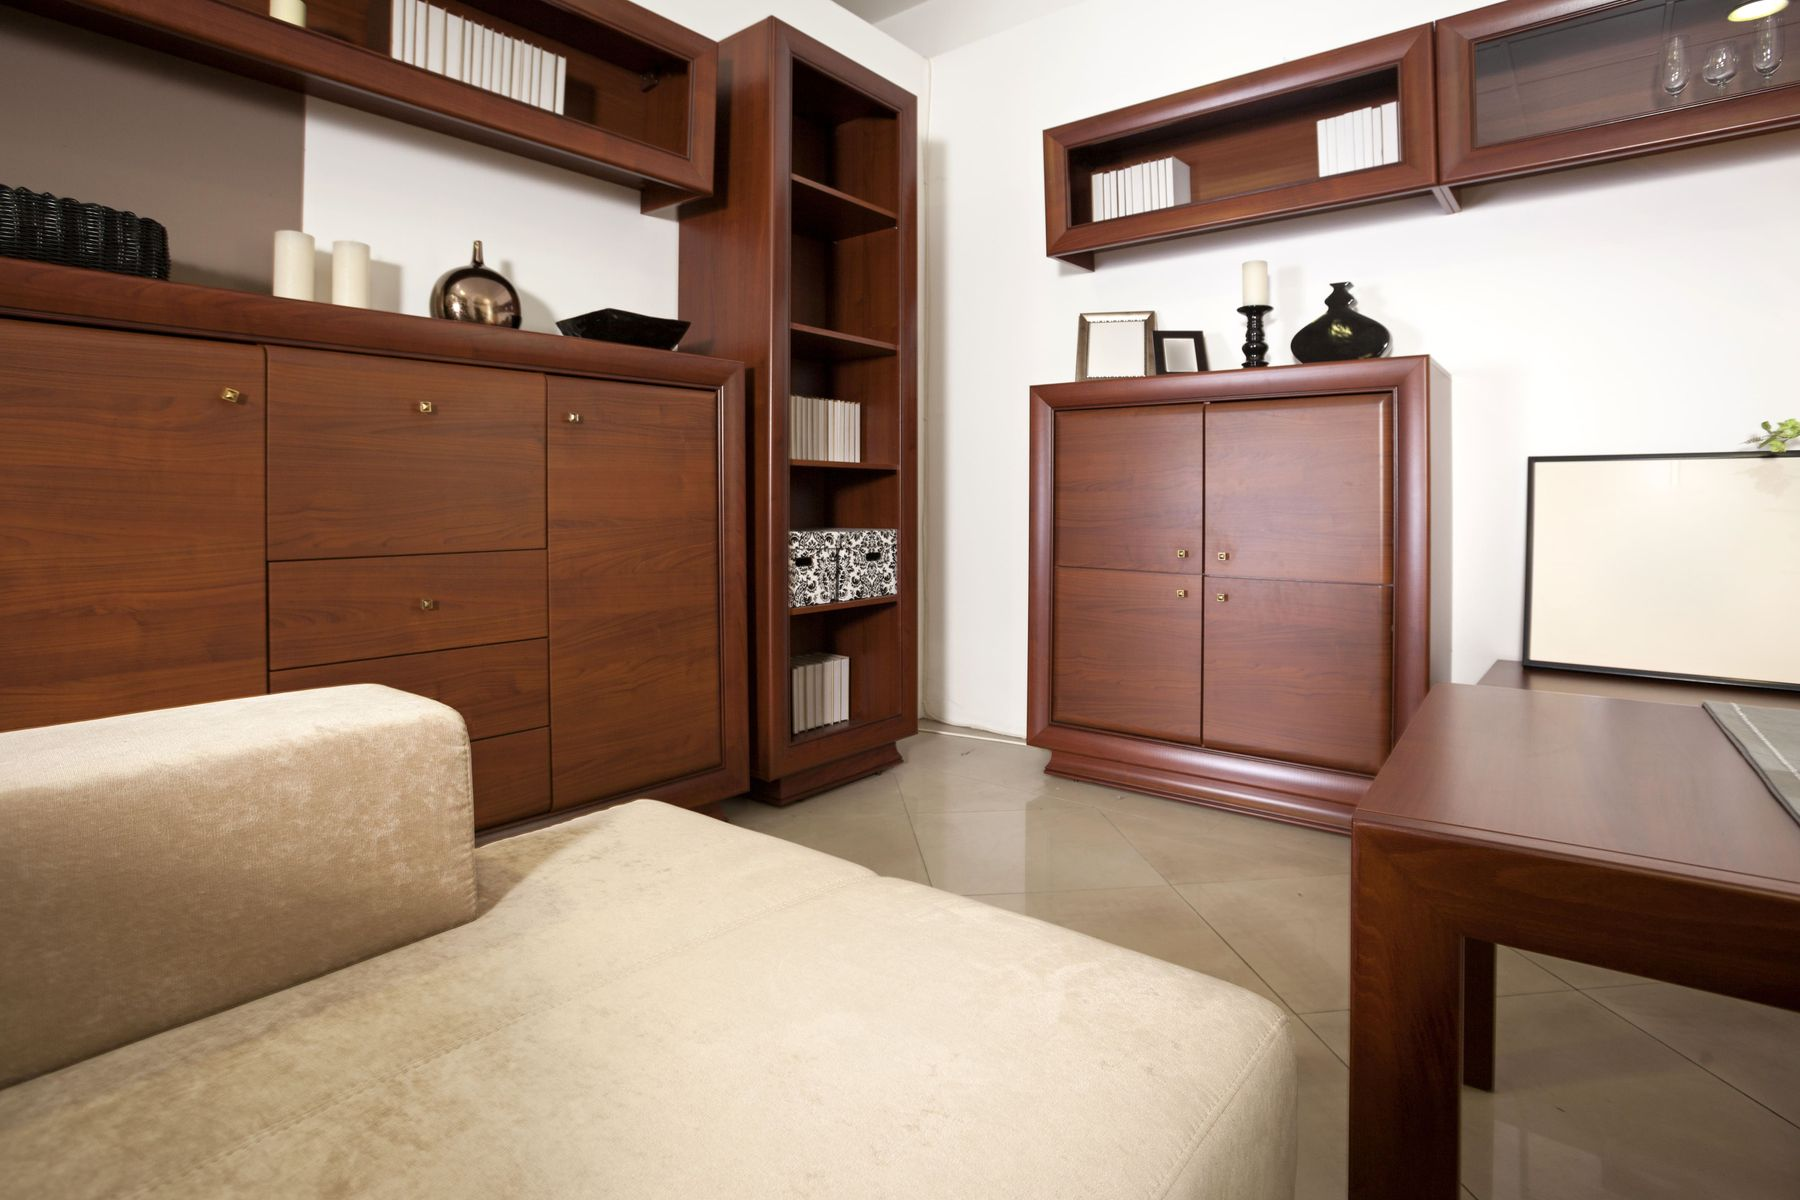 How to Keep Wooden Furniture Clean & Shiny